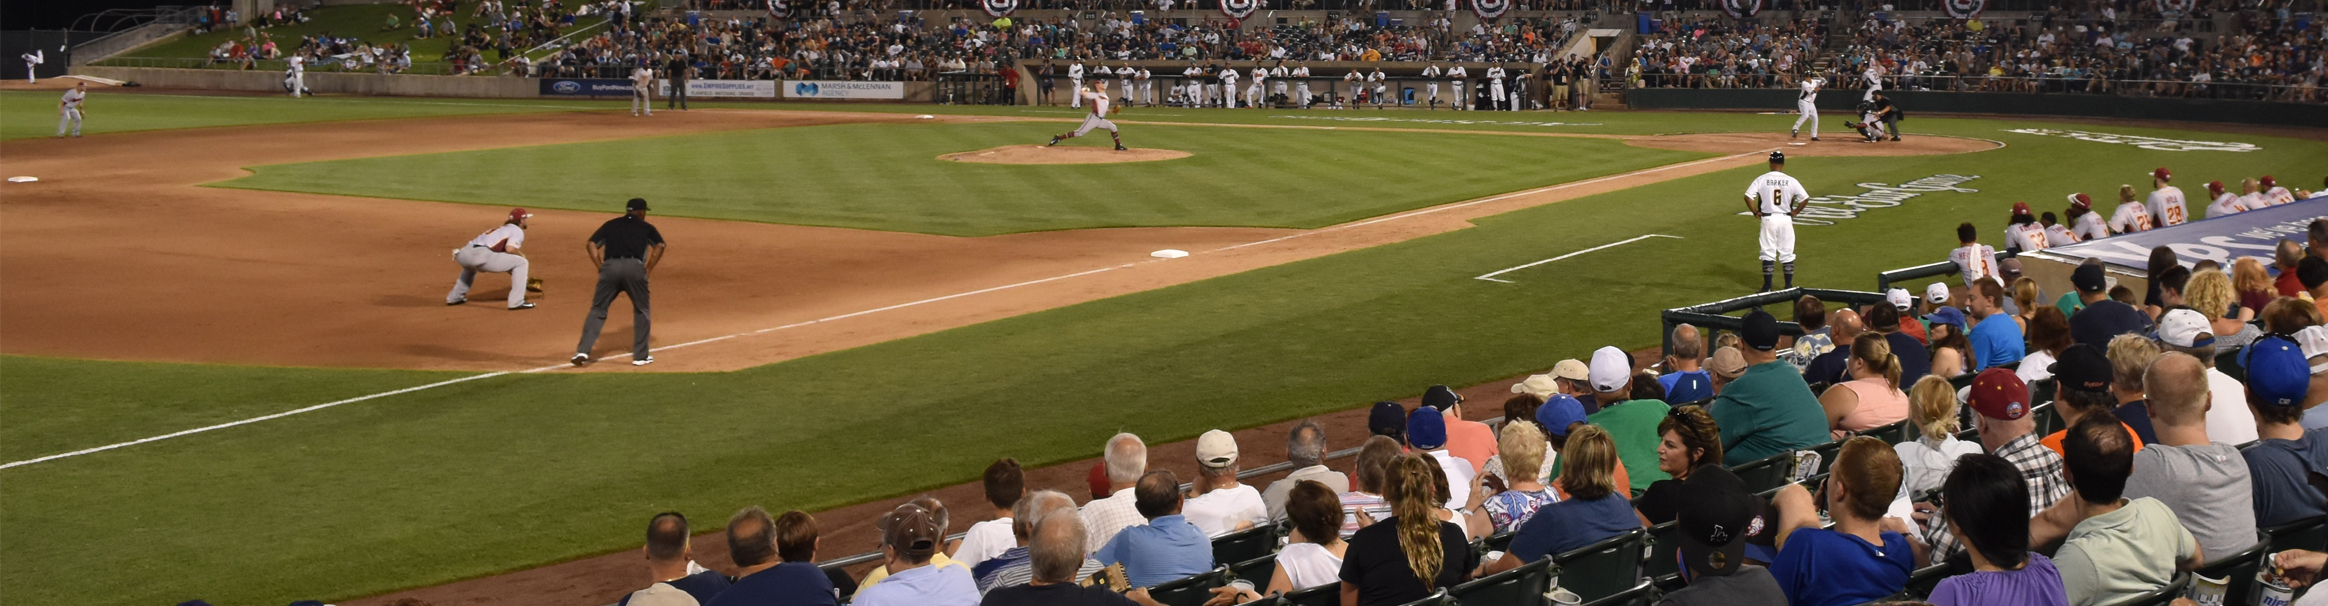 Somerset Patriots Baseball- Affordable Family Fun In Central New